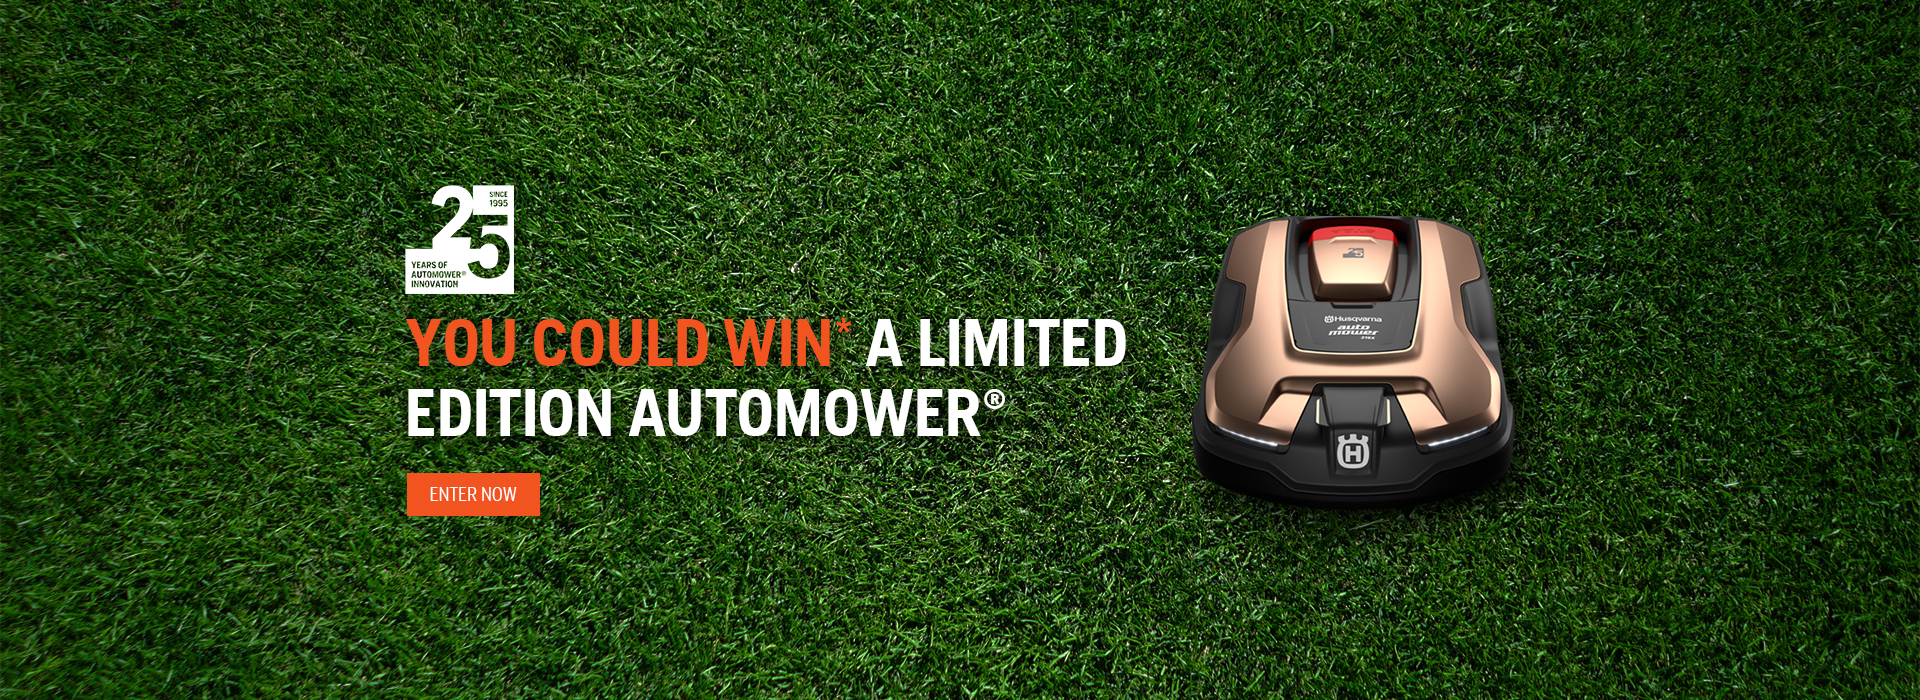 Automower Competition